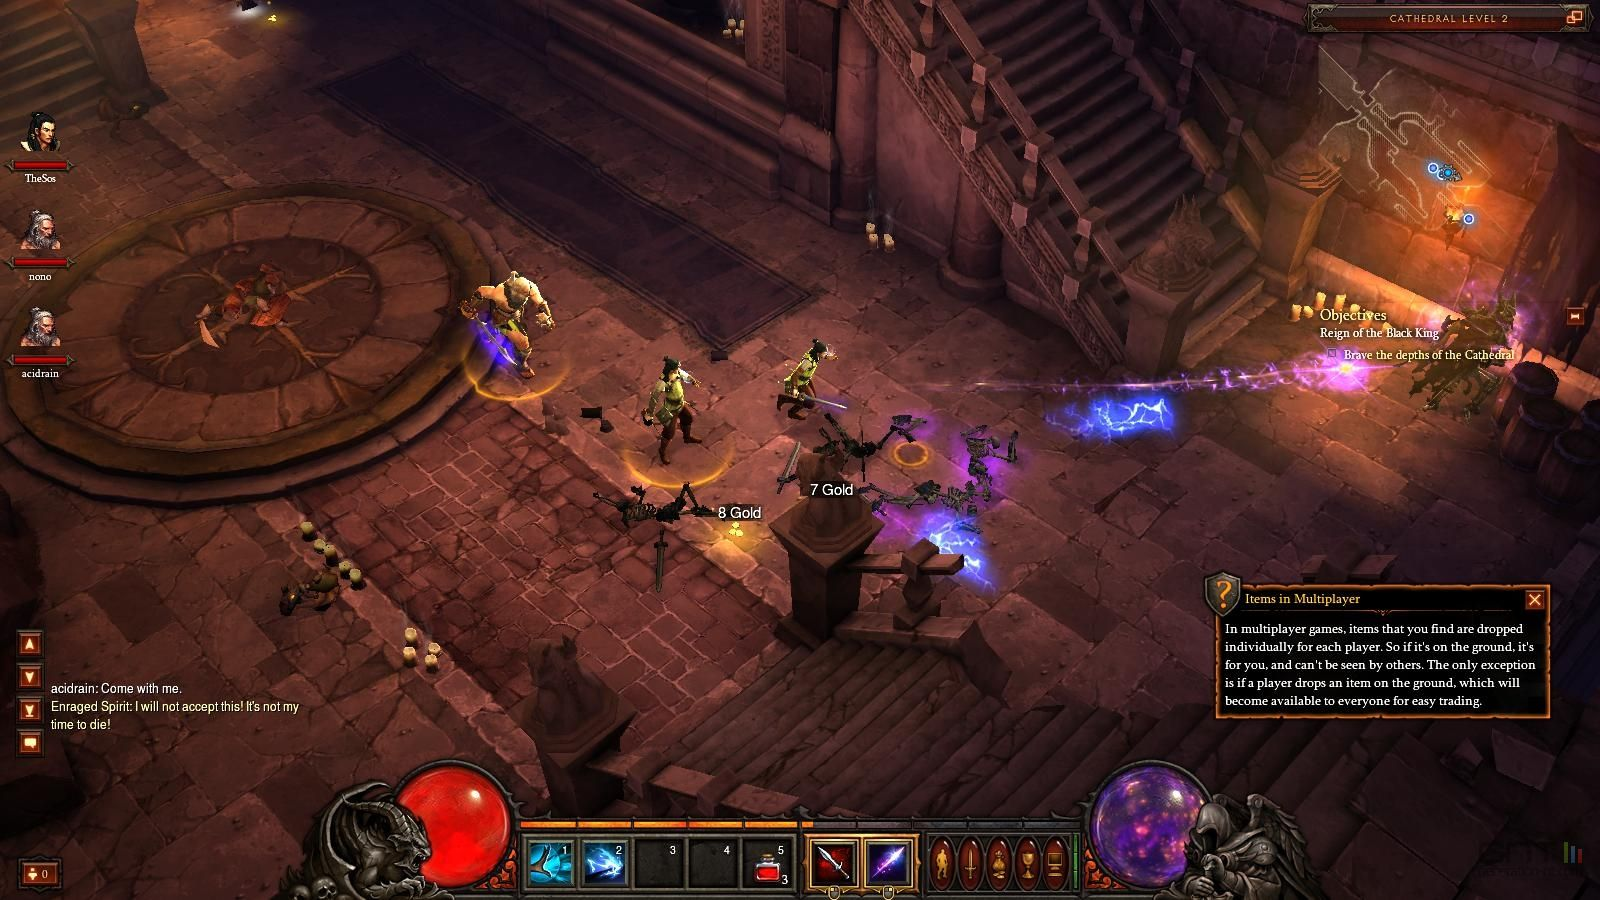 Diablo 3 headed to Playstation 3 and Playstation 4